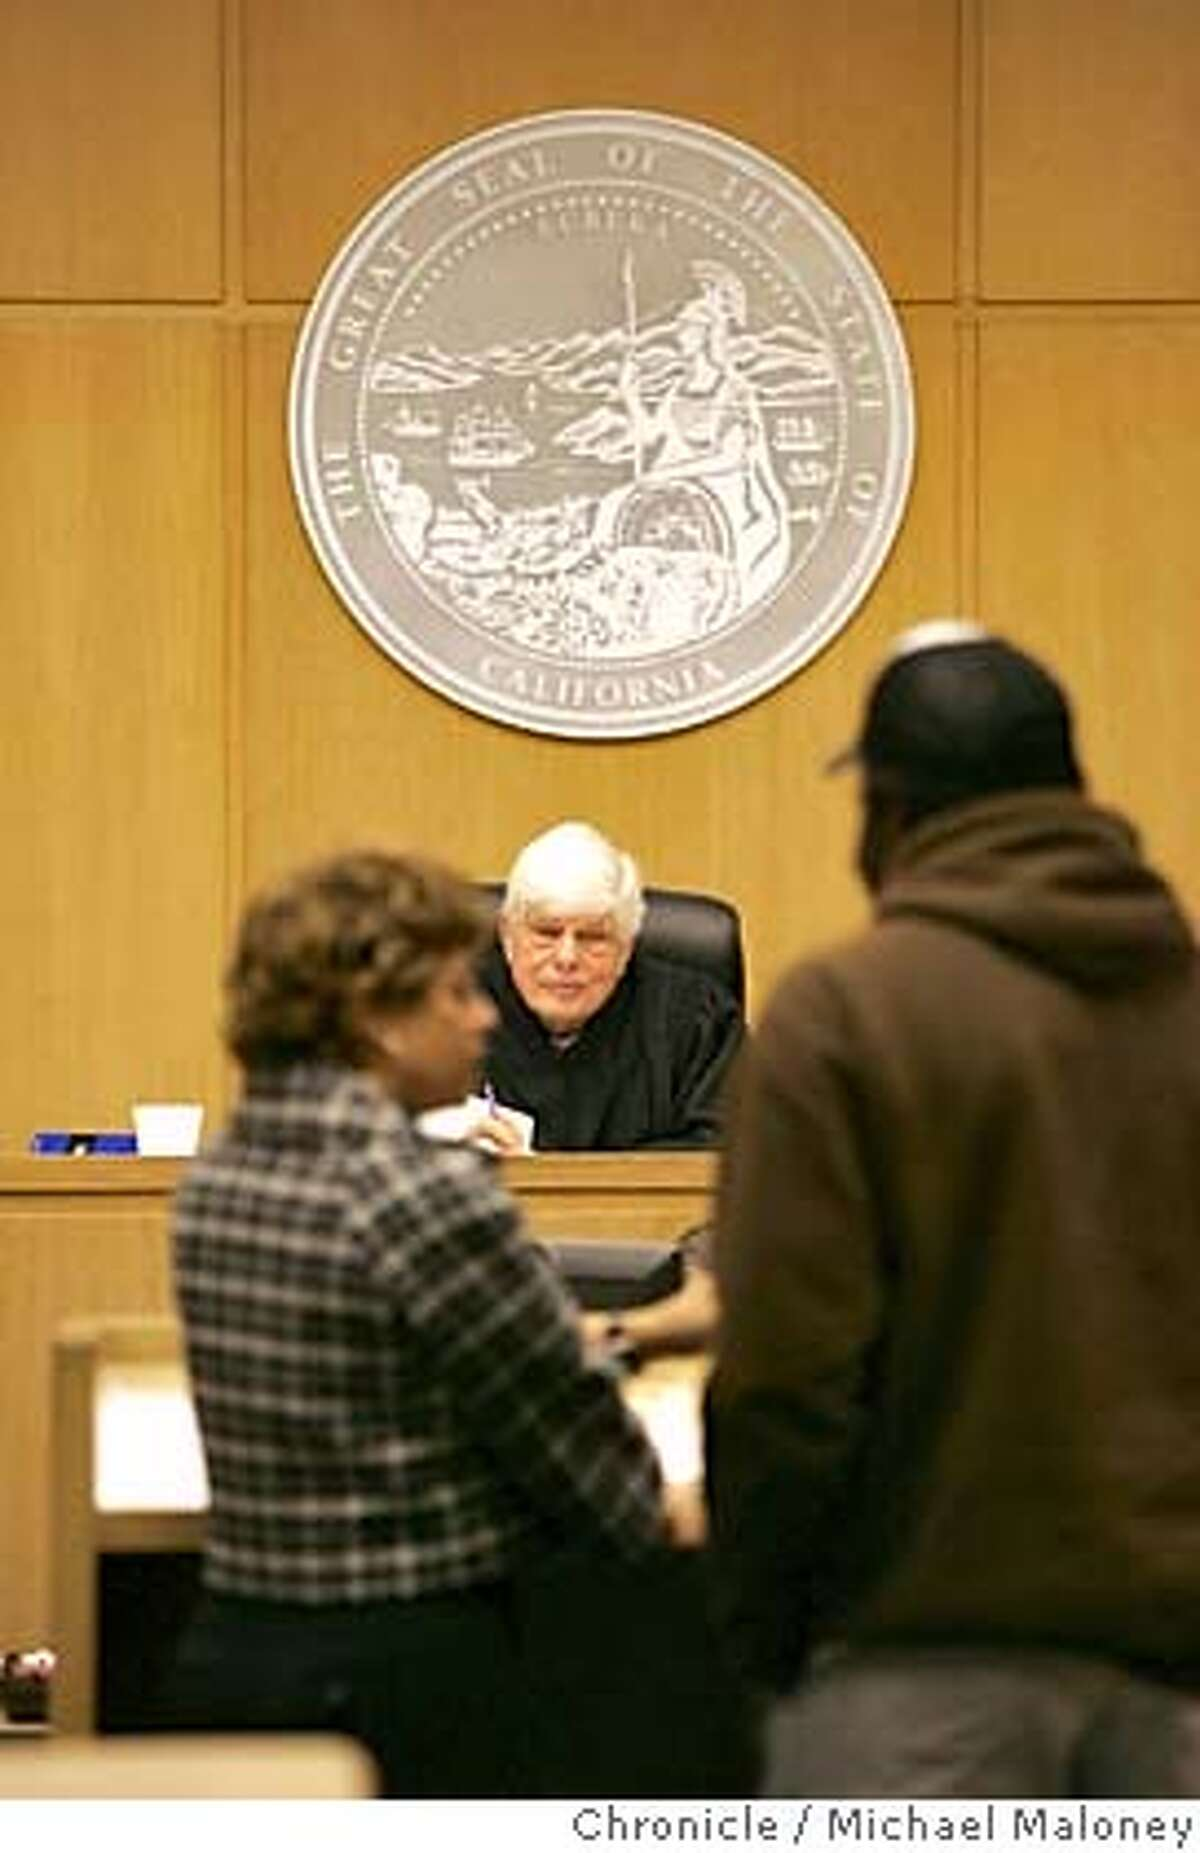 COURT_052_MJM.jpg Public Defender Jennifer Johnson (left) works with her clients in the Behavioral Health Court before Judge Herbert Donaldson. The Behavioral Health Court at the Hall of Justice is a two-year-old program in which criminal offenders who have mental health problems are given a chance to get into treatment programs and such, under the guidance of the DA and public defender's office, instead of being charged with a crime and prosecuted. If you stay in treatment and on your meds, you might graduate from the program and stay free instead of doing prison time. Event in San Francisco, CA Photo by Michael Maloney / The Chronicle MANDATORY CREDIT FOR PHOTOG AND SF CHRONICLE/ -MAGS OUT